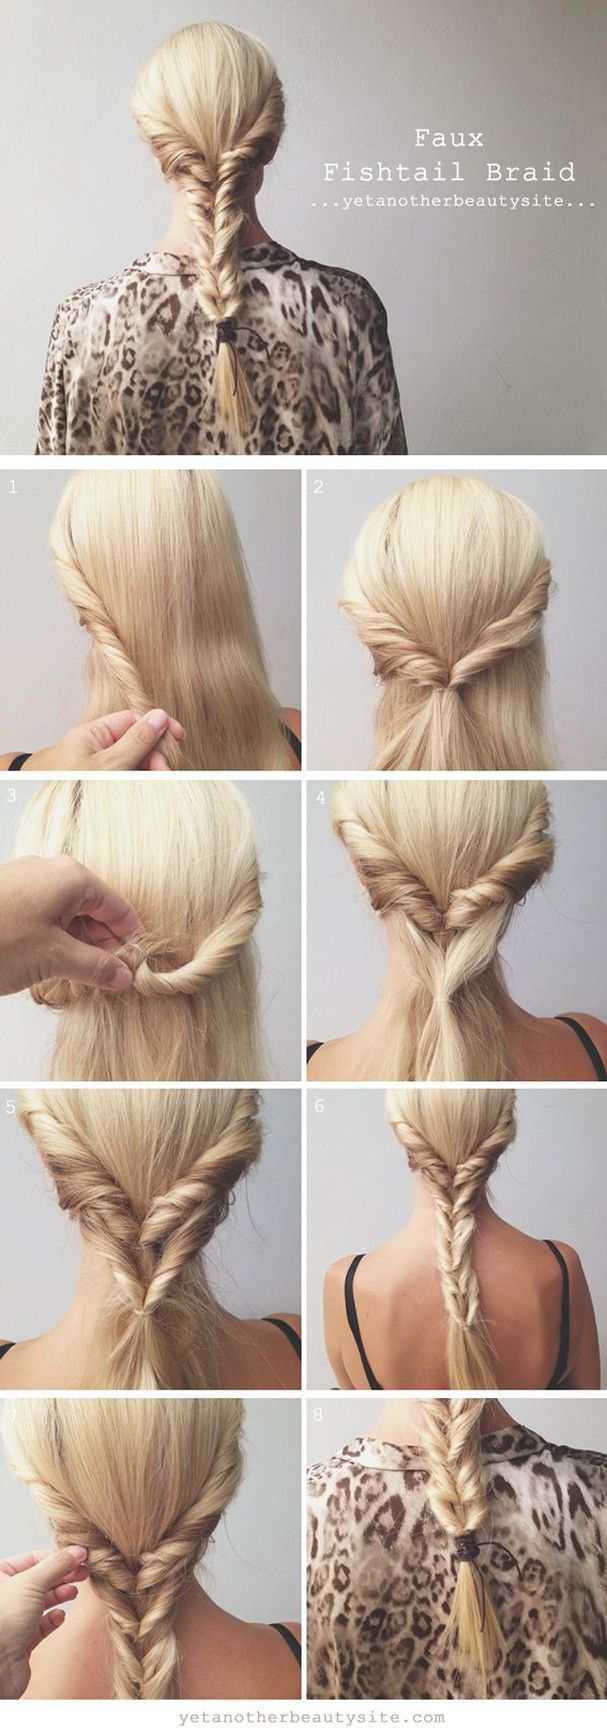 best hair images on pinterest makeup braided hairstyle and